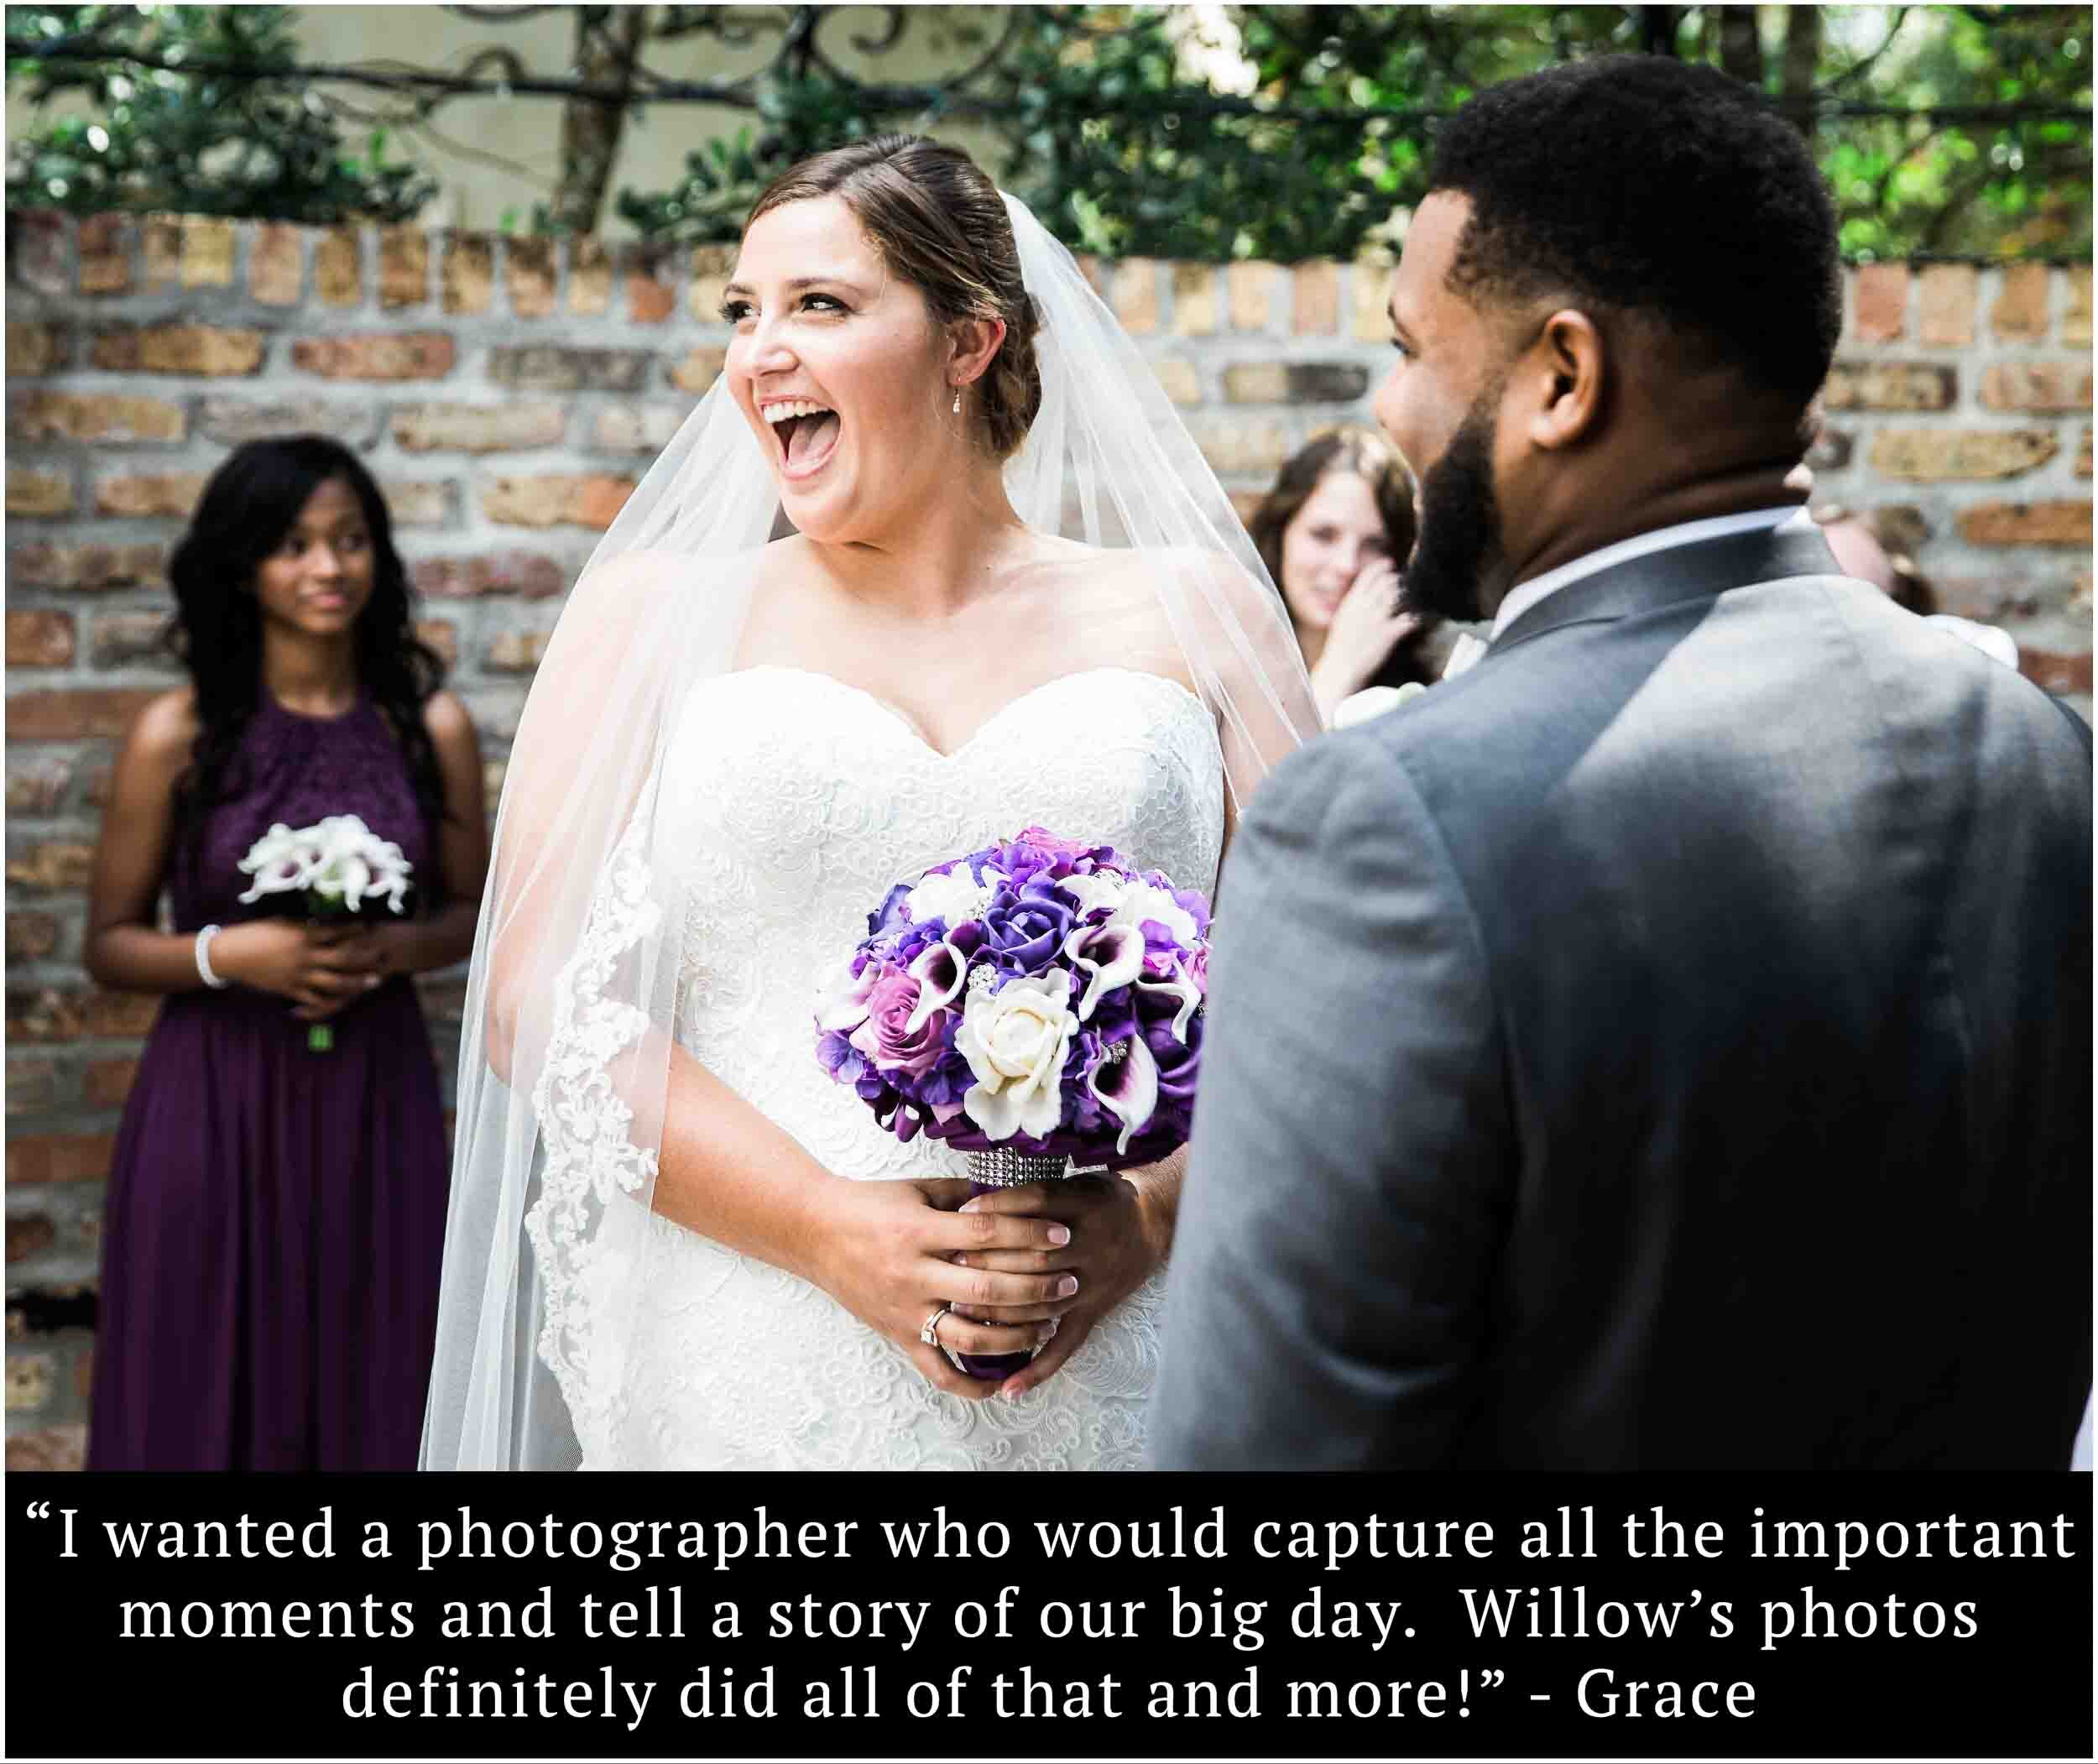 46-Fleur-de-Lis-Center-Mandeville-New-Orleans-Wedding-Ceremony-Photo-Willows-World-Photo.jpg